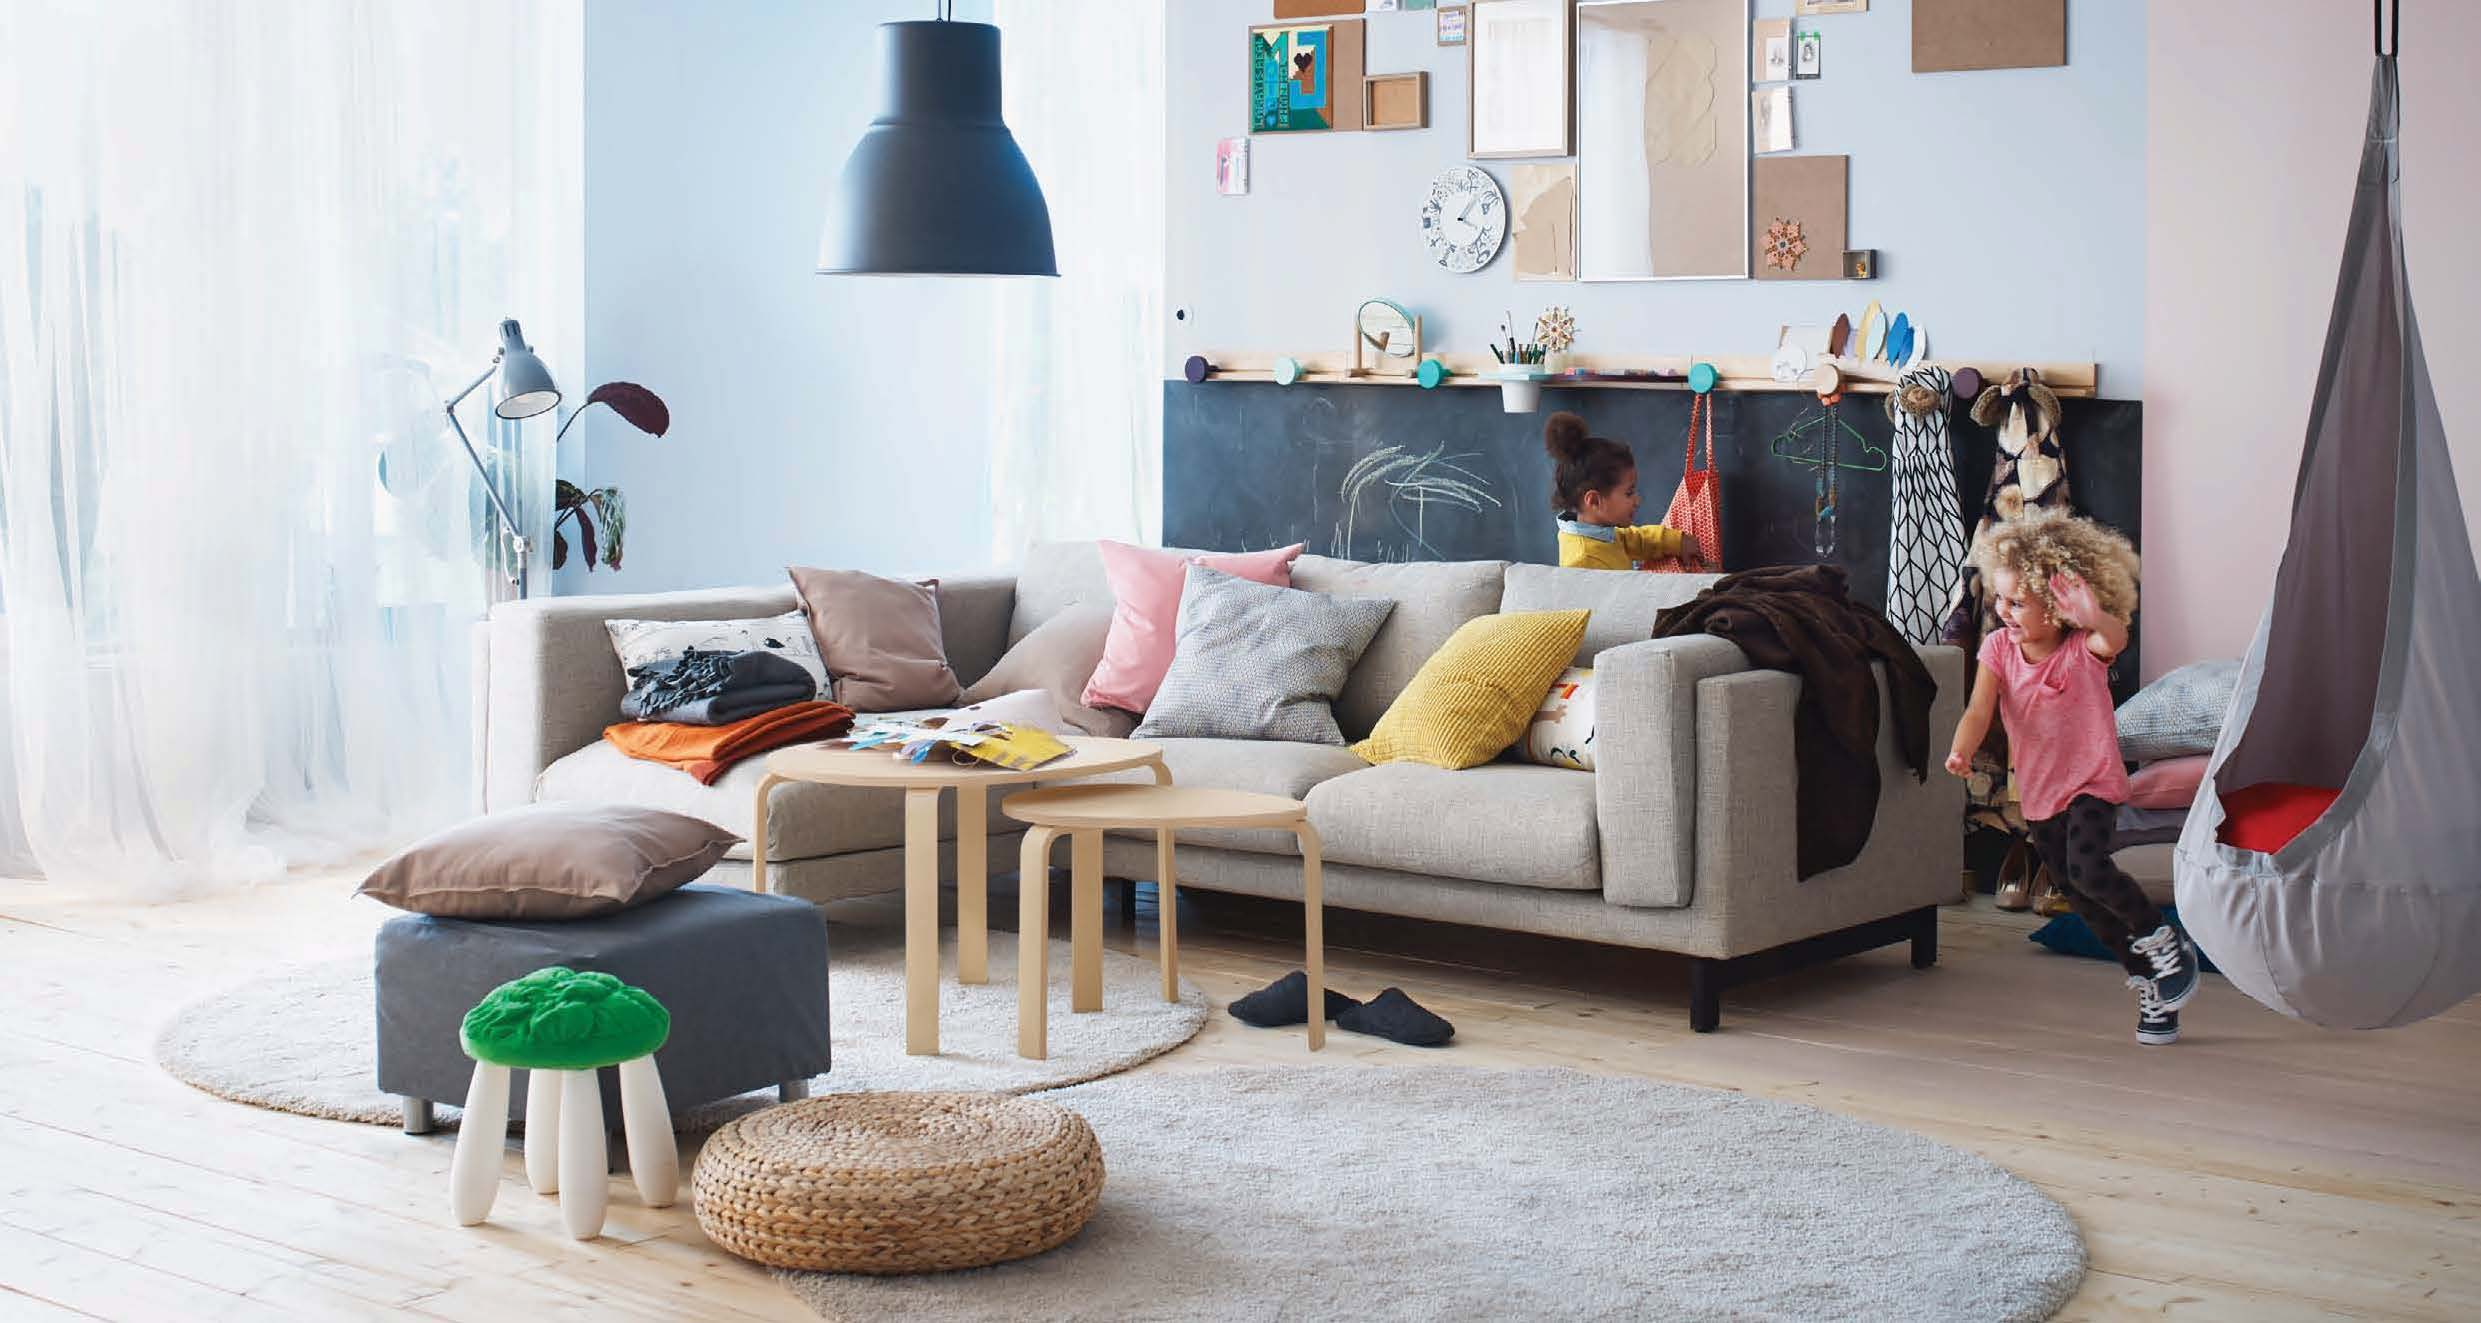 artsy-living-room-ikea | Interior Design Ideas.